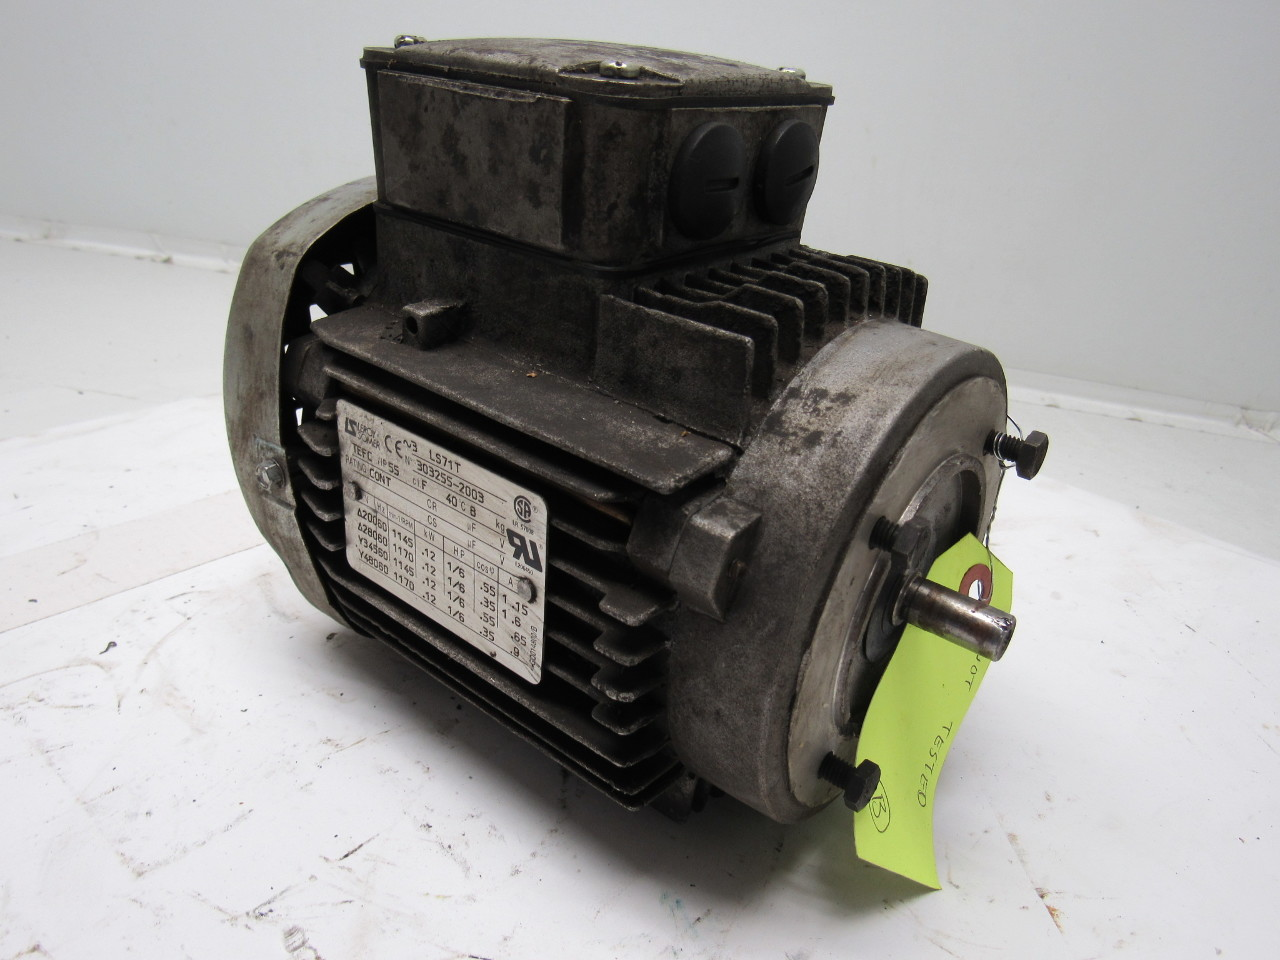 Ls leroy somer ls71t 1 6 hp electric motor 3ph 200 280 345 for 200 horsepower electric motor